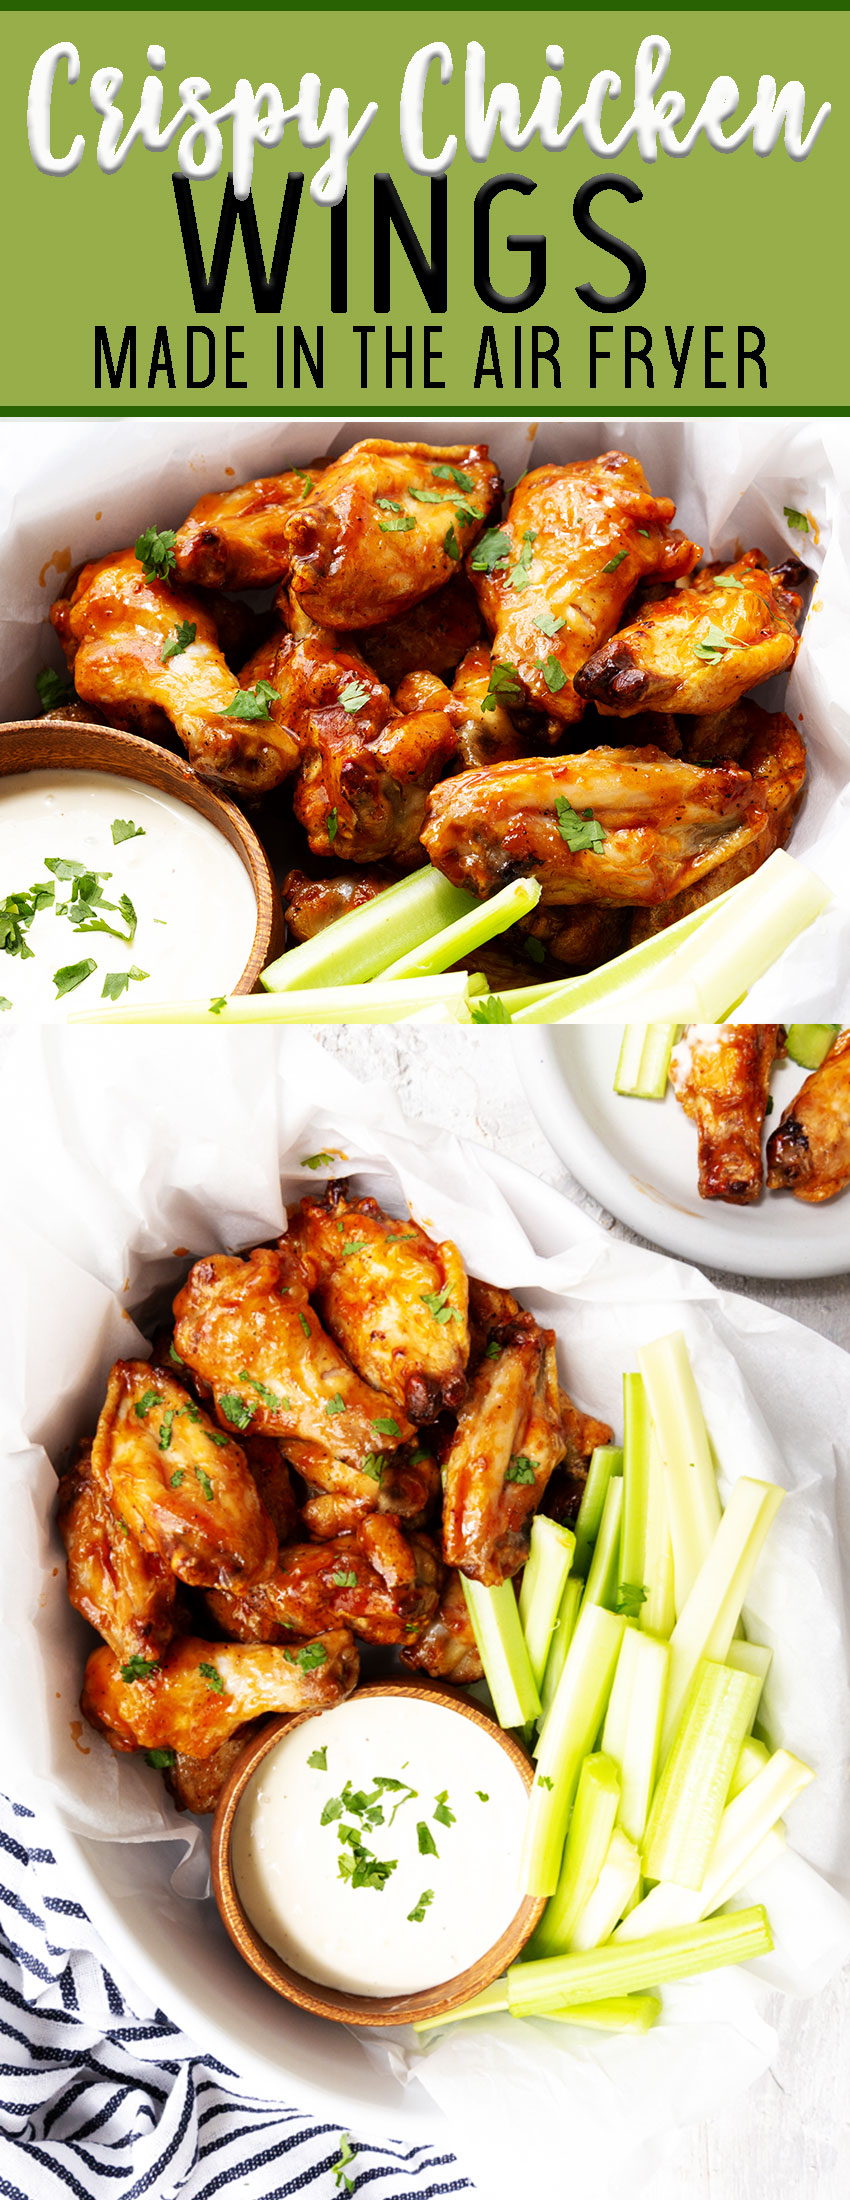 How to make crispy chicken wings in the air fryer